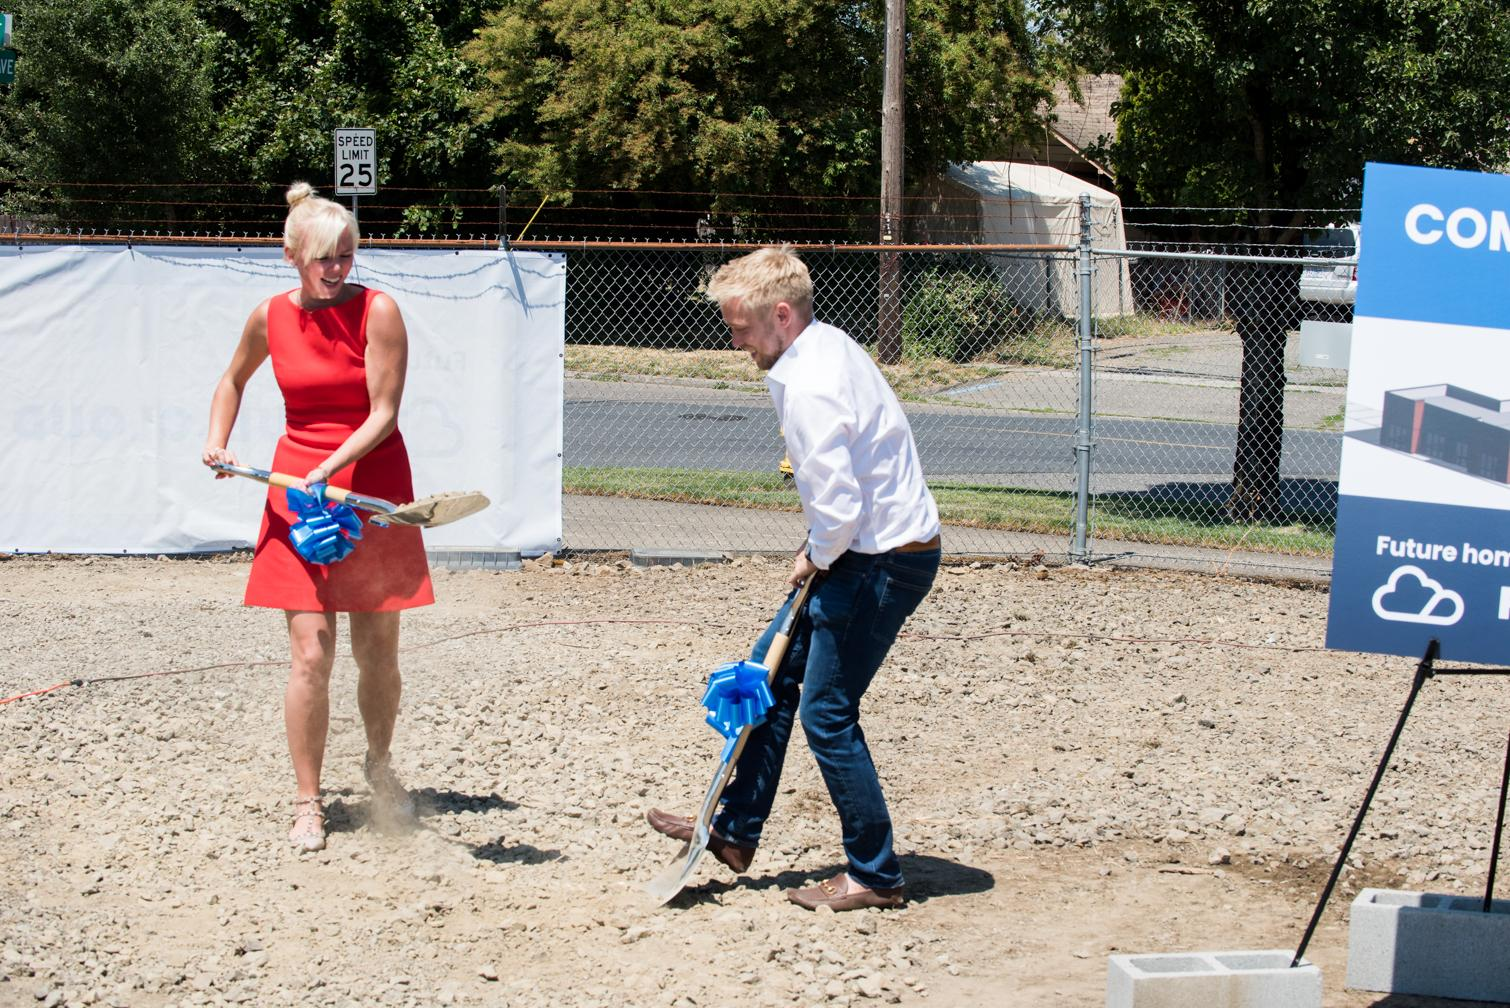 Kevin and Alex shoveling the first dirt to break ground on the FuelCloud headquarters